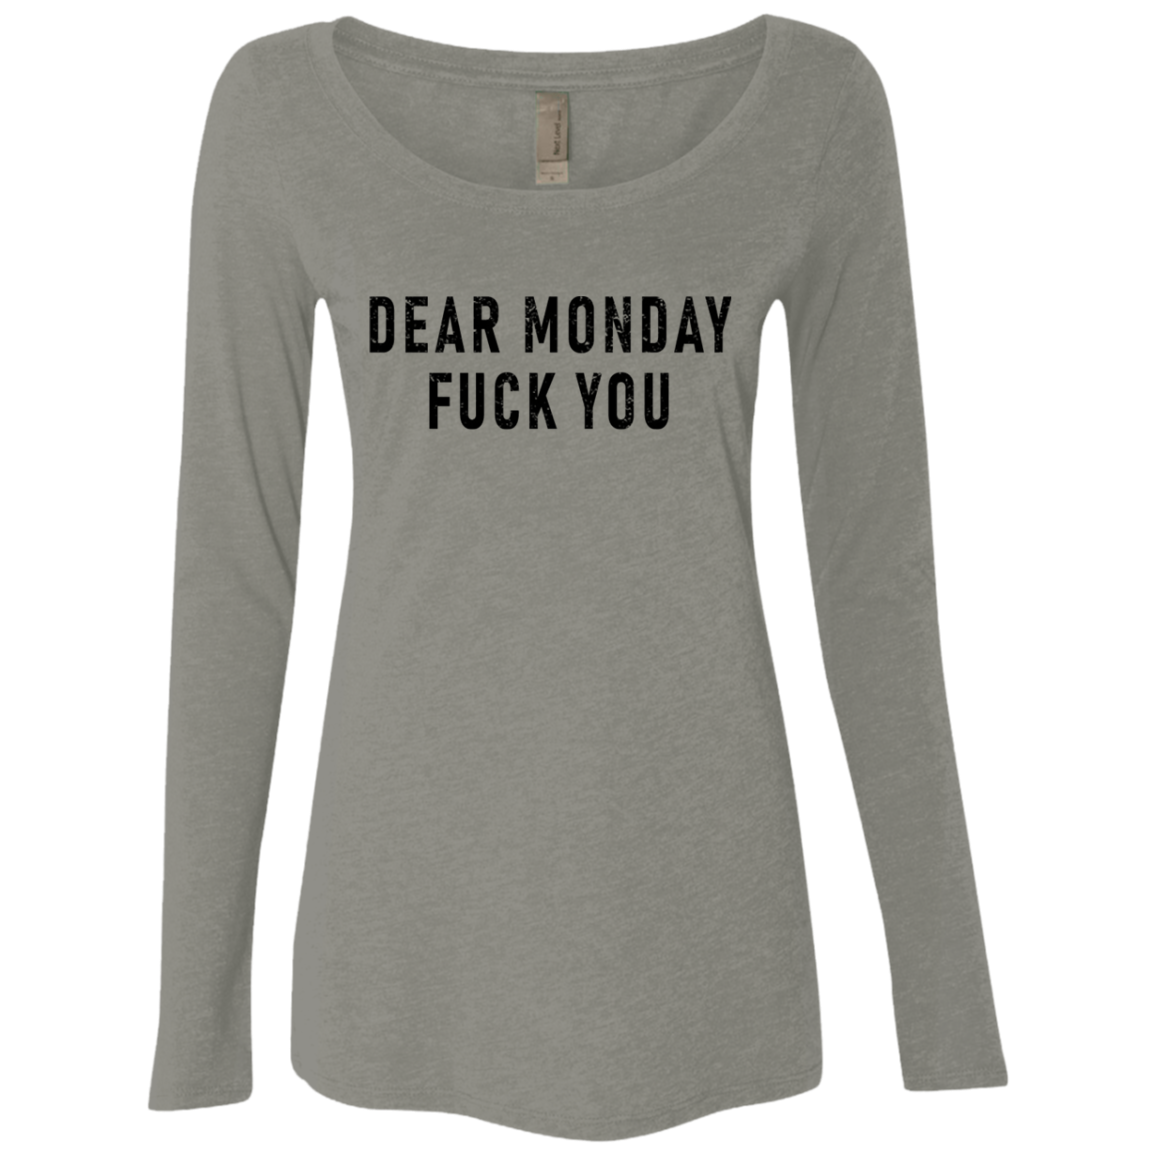 Dear Monday Fuck You Women's Long Sleeve Tee